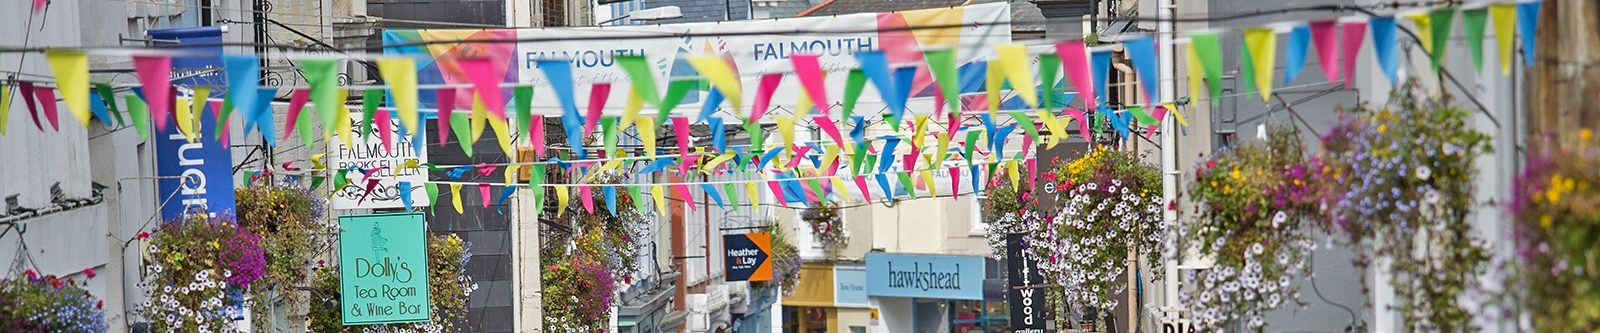 celebrations in Falmouth